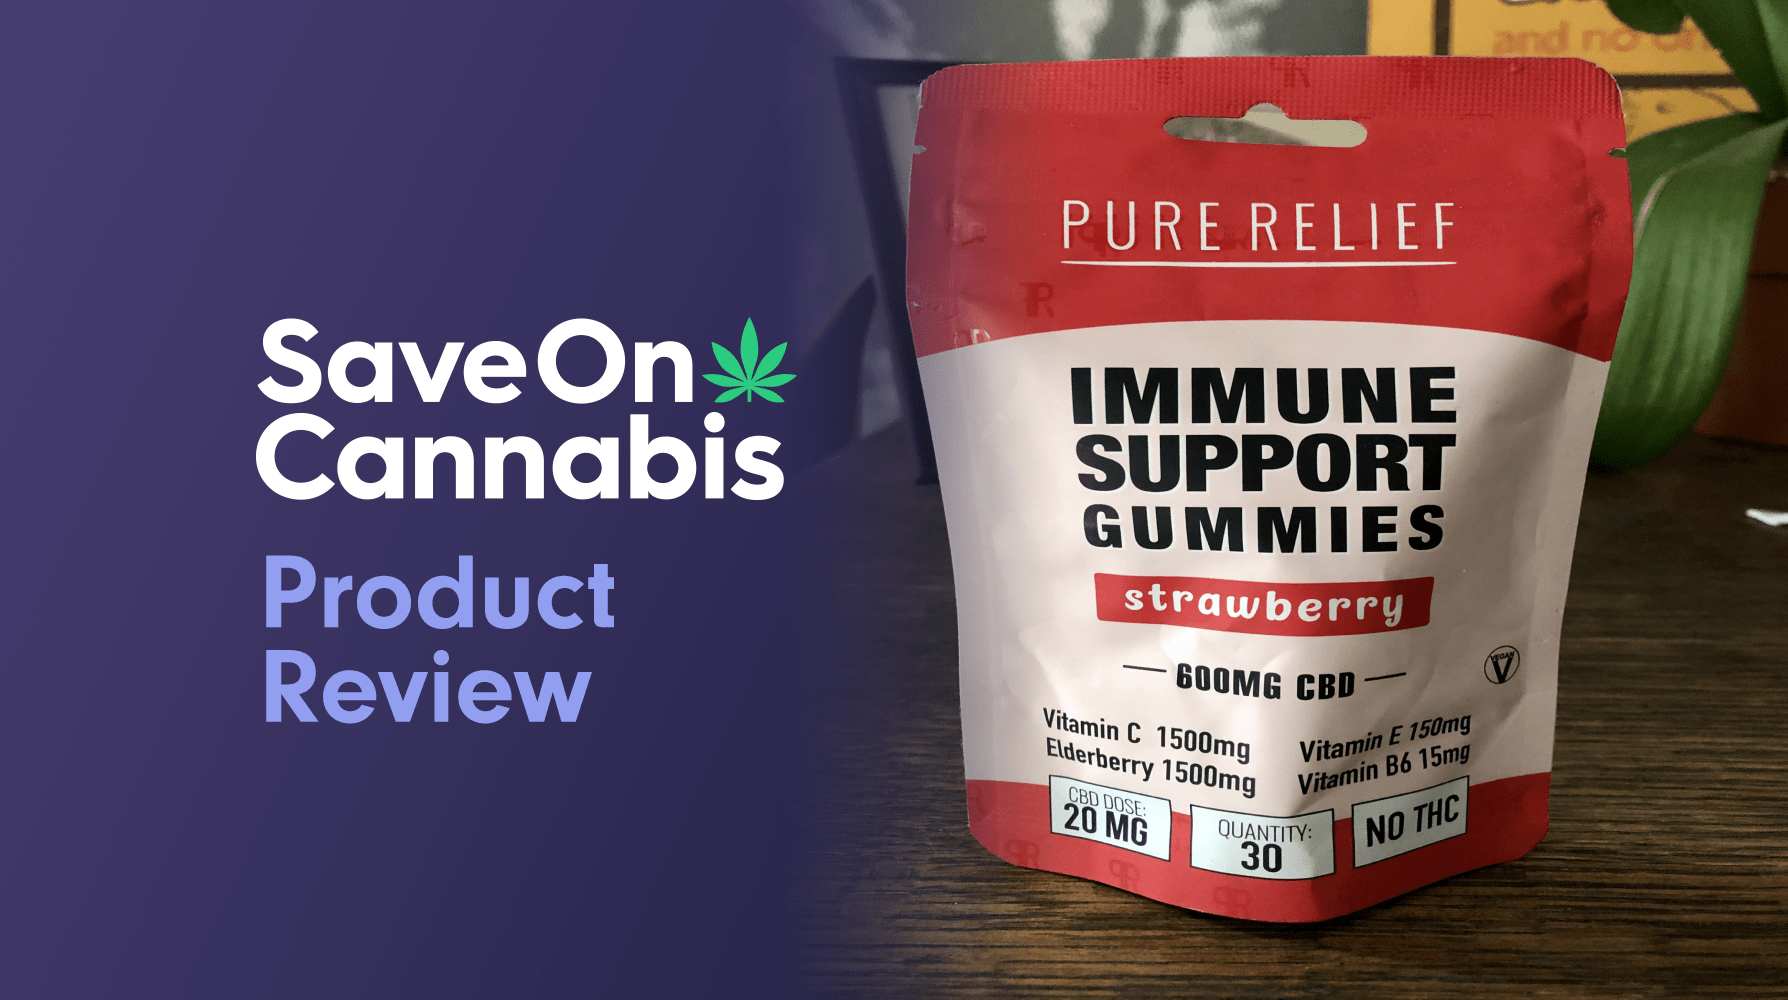 Pure Relief Immune Support Gummies Save On Cannabis Review Website